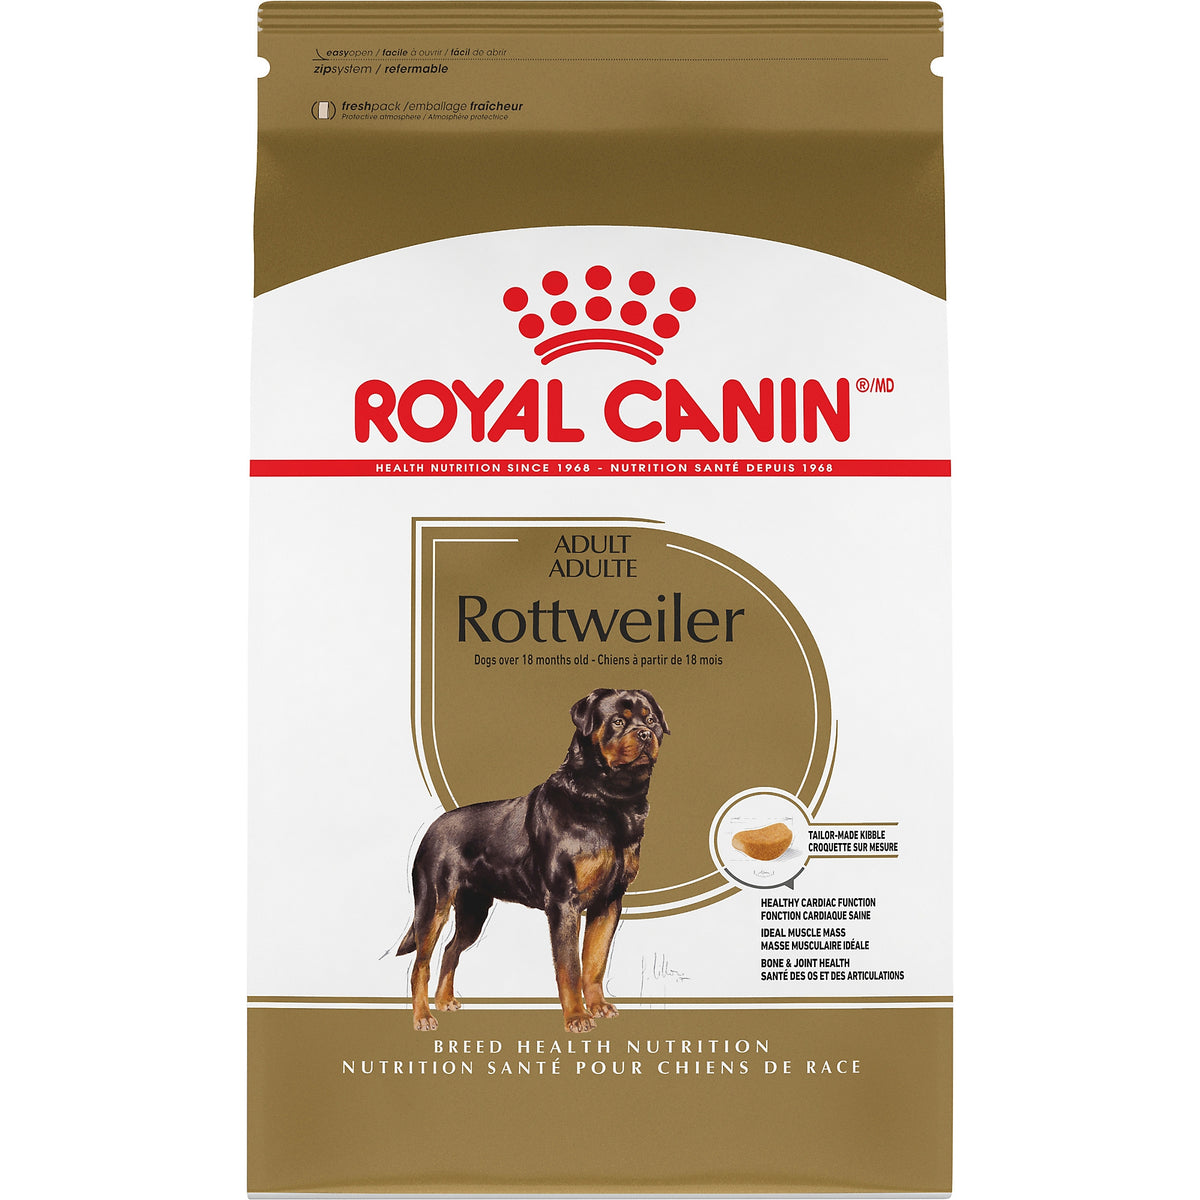 Royal Canin Rottweiler Adult Dog Food (30lb)